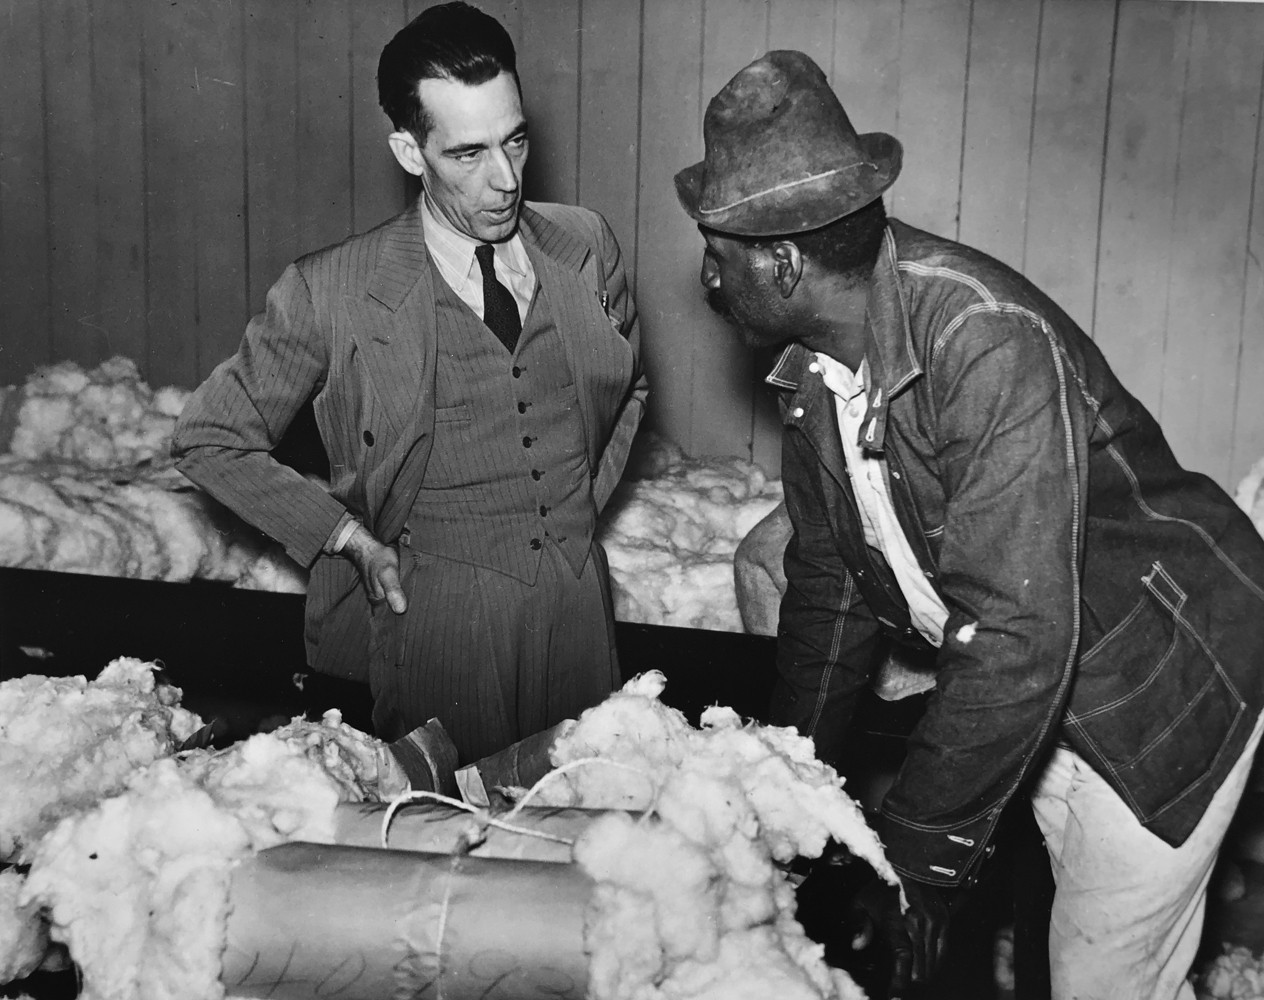 Marion Post Wolcott, Tenant farmer brings his cotton sample to buyer/broker to discuss price, Clarksdale, MS, 1939, gelatin silver print, 11 x 14 inches, signed by artist, $3000.